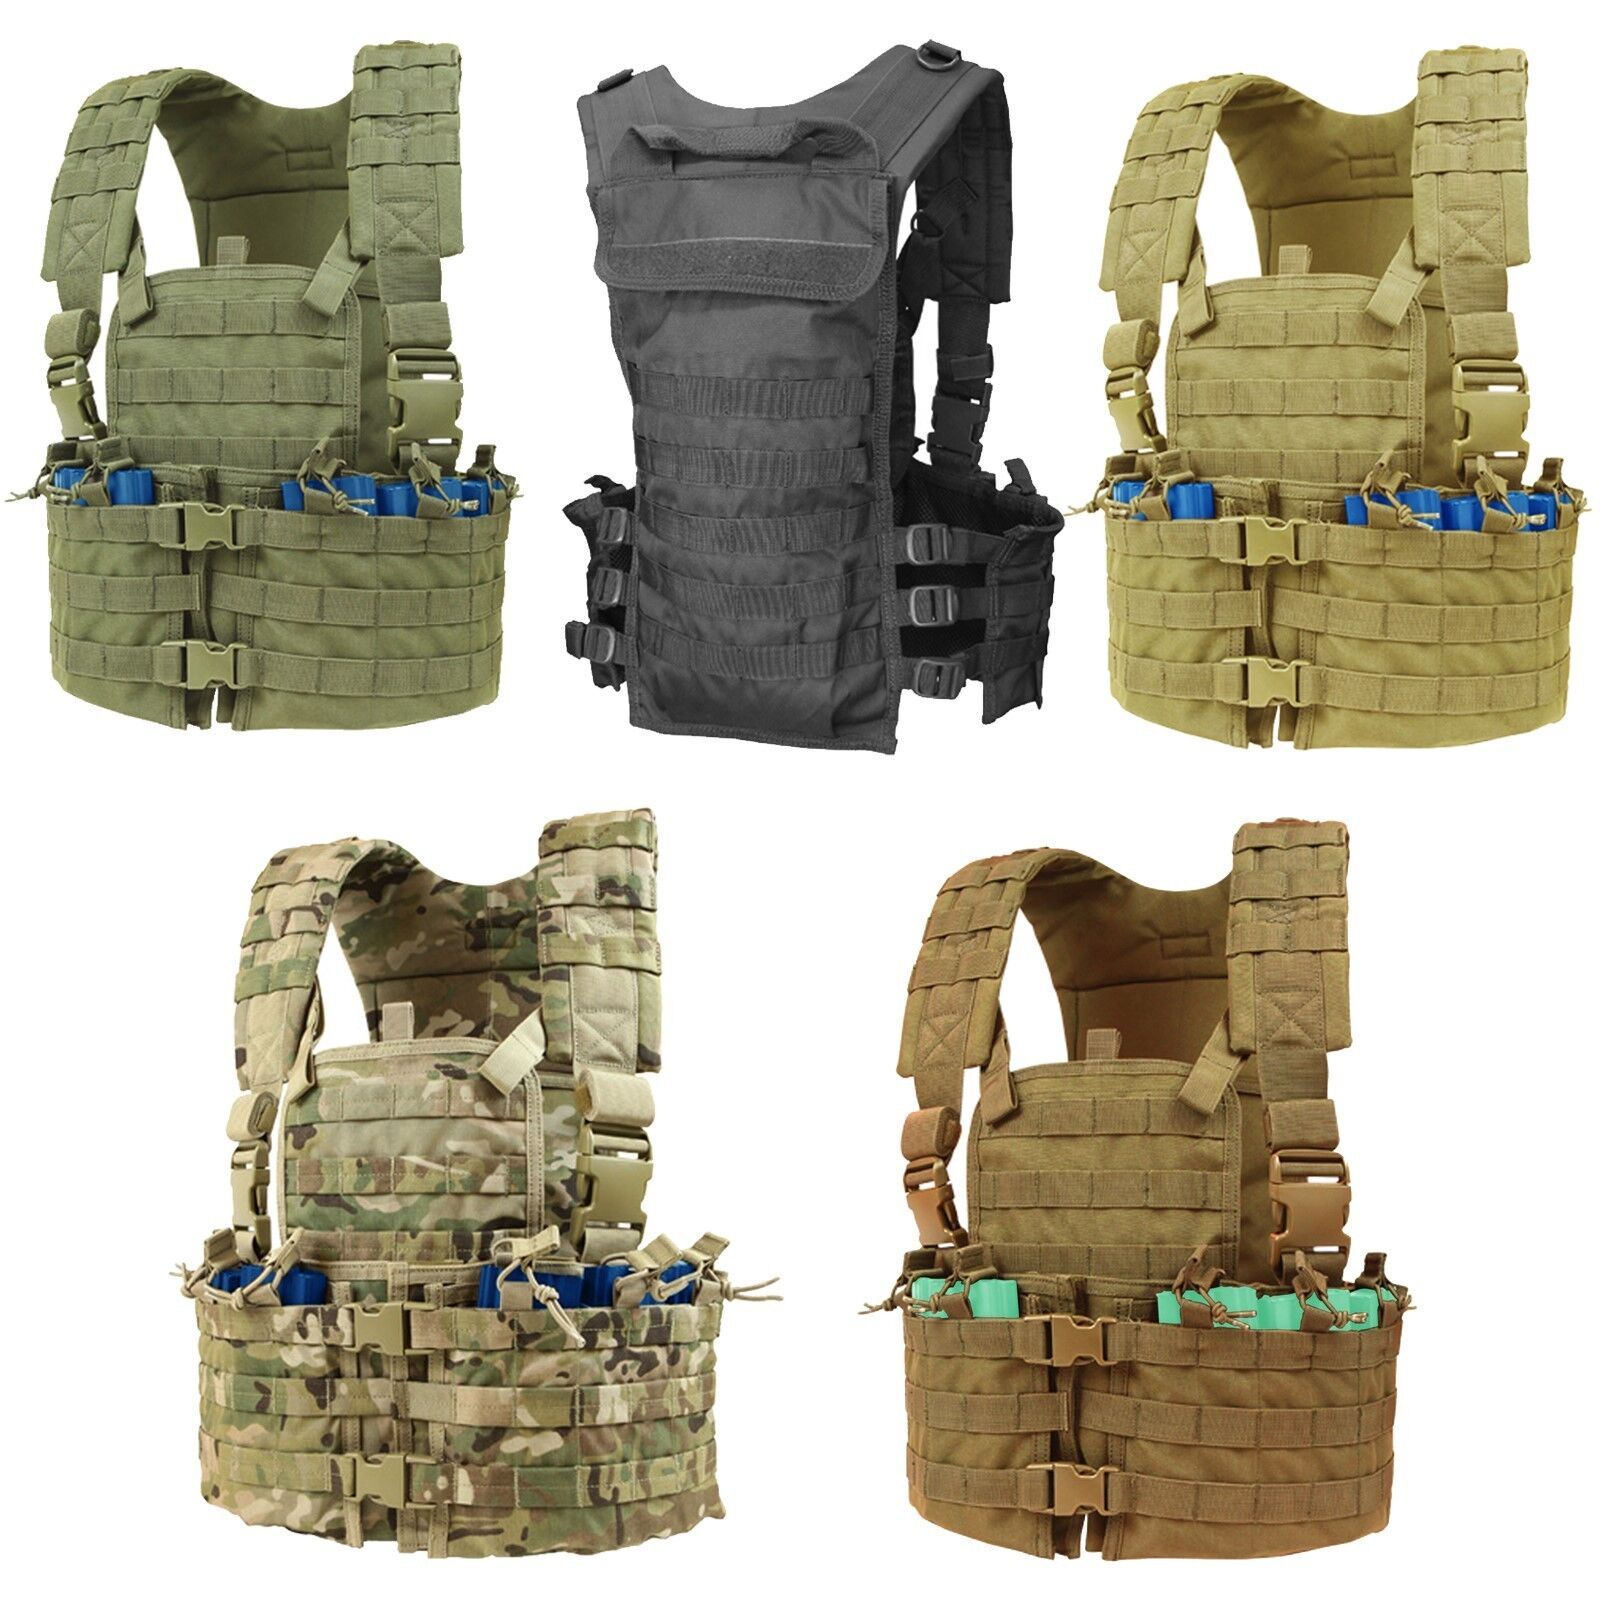 Condor CS Tactical Hydration Chest Rig 5.56 Magazine Modular MOLLE PALS Vest Set